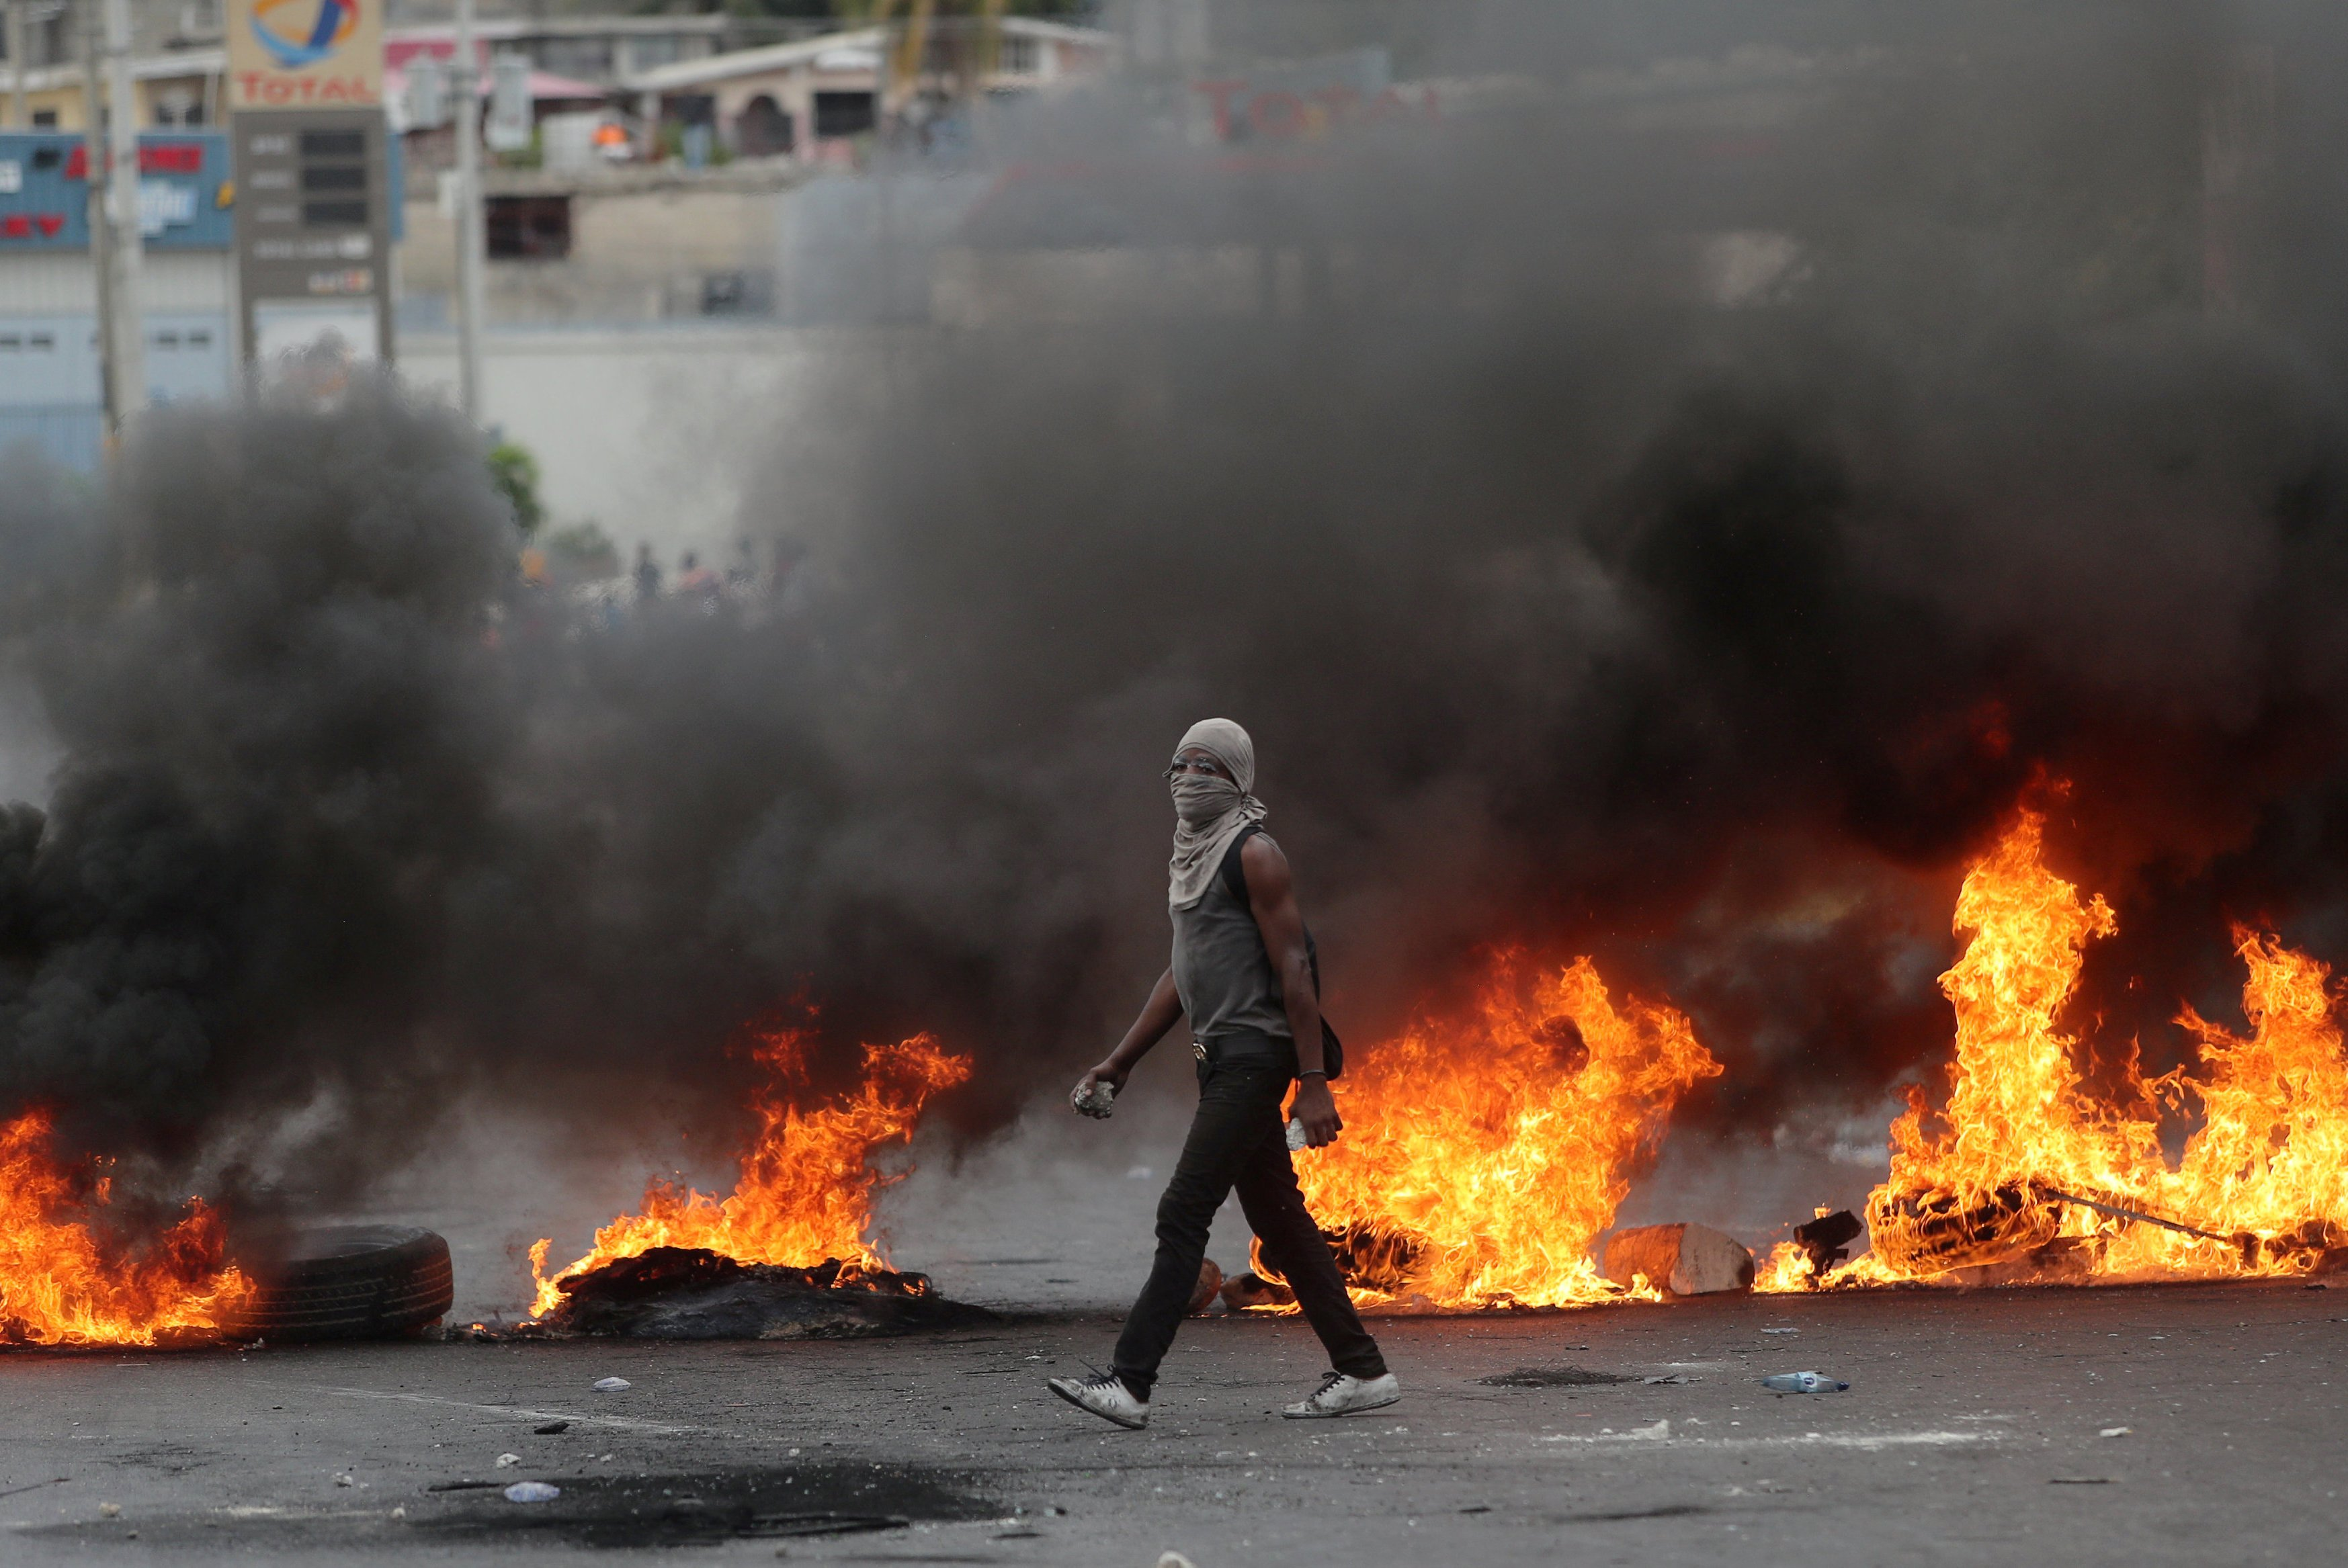 FILE – A demonstrator walks past a burning barricade during anti-government protests in Port-au-Prince, Haiti, Feb. 15, 2019.